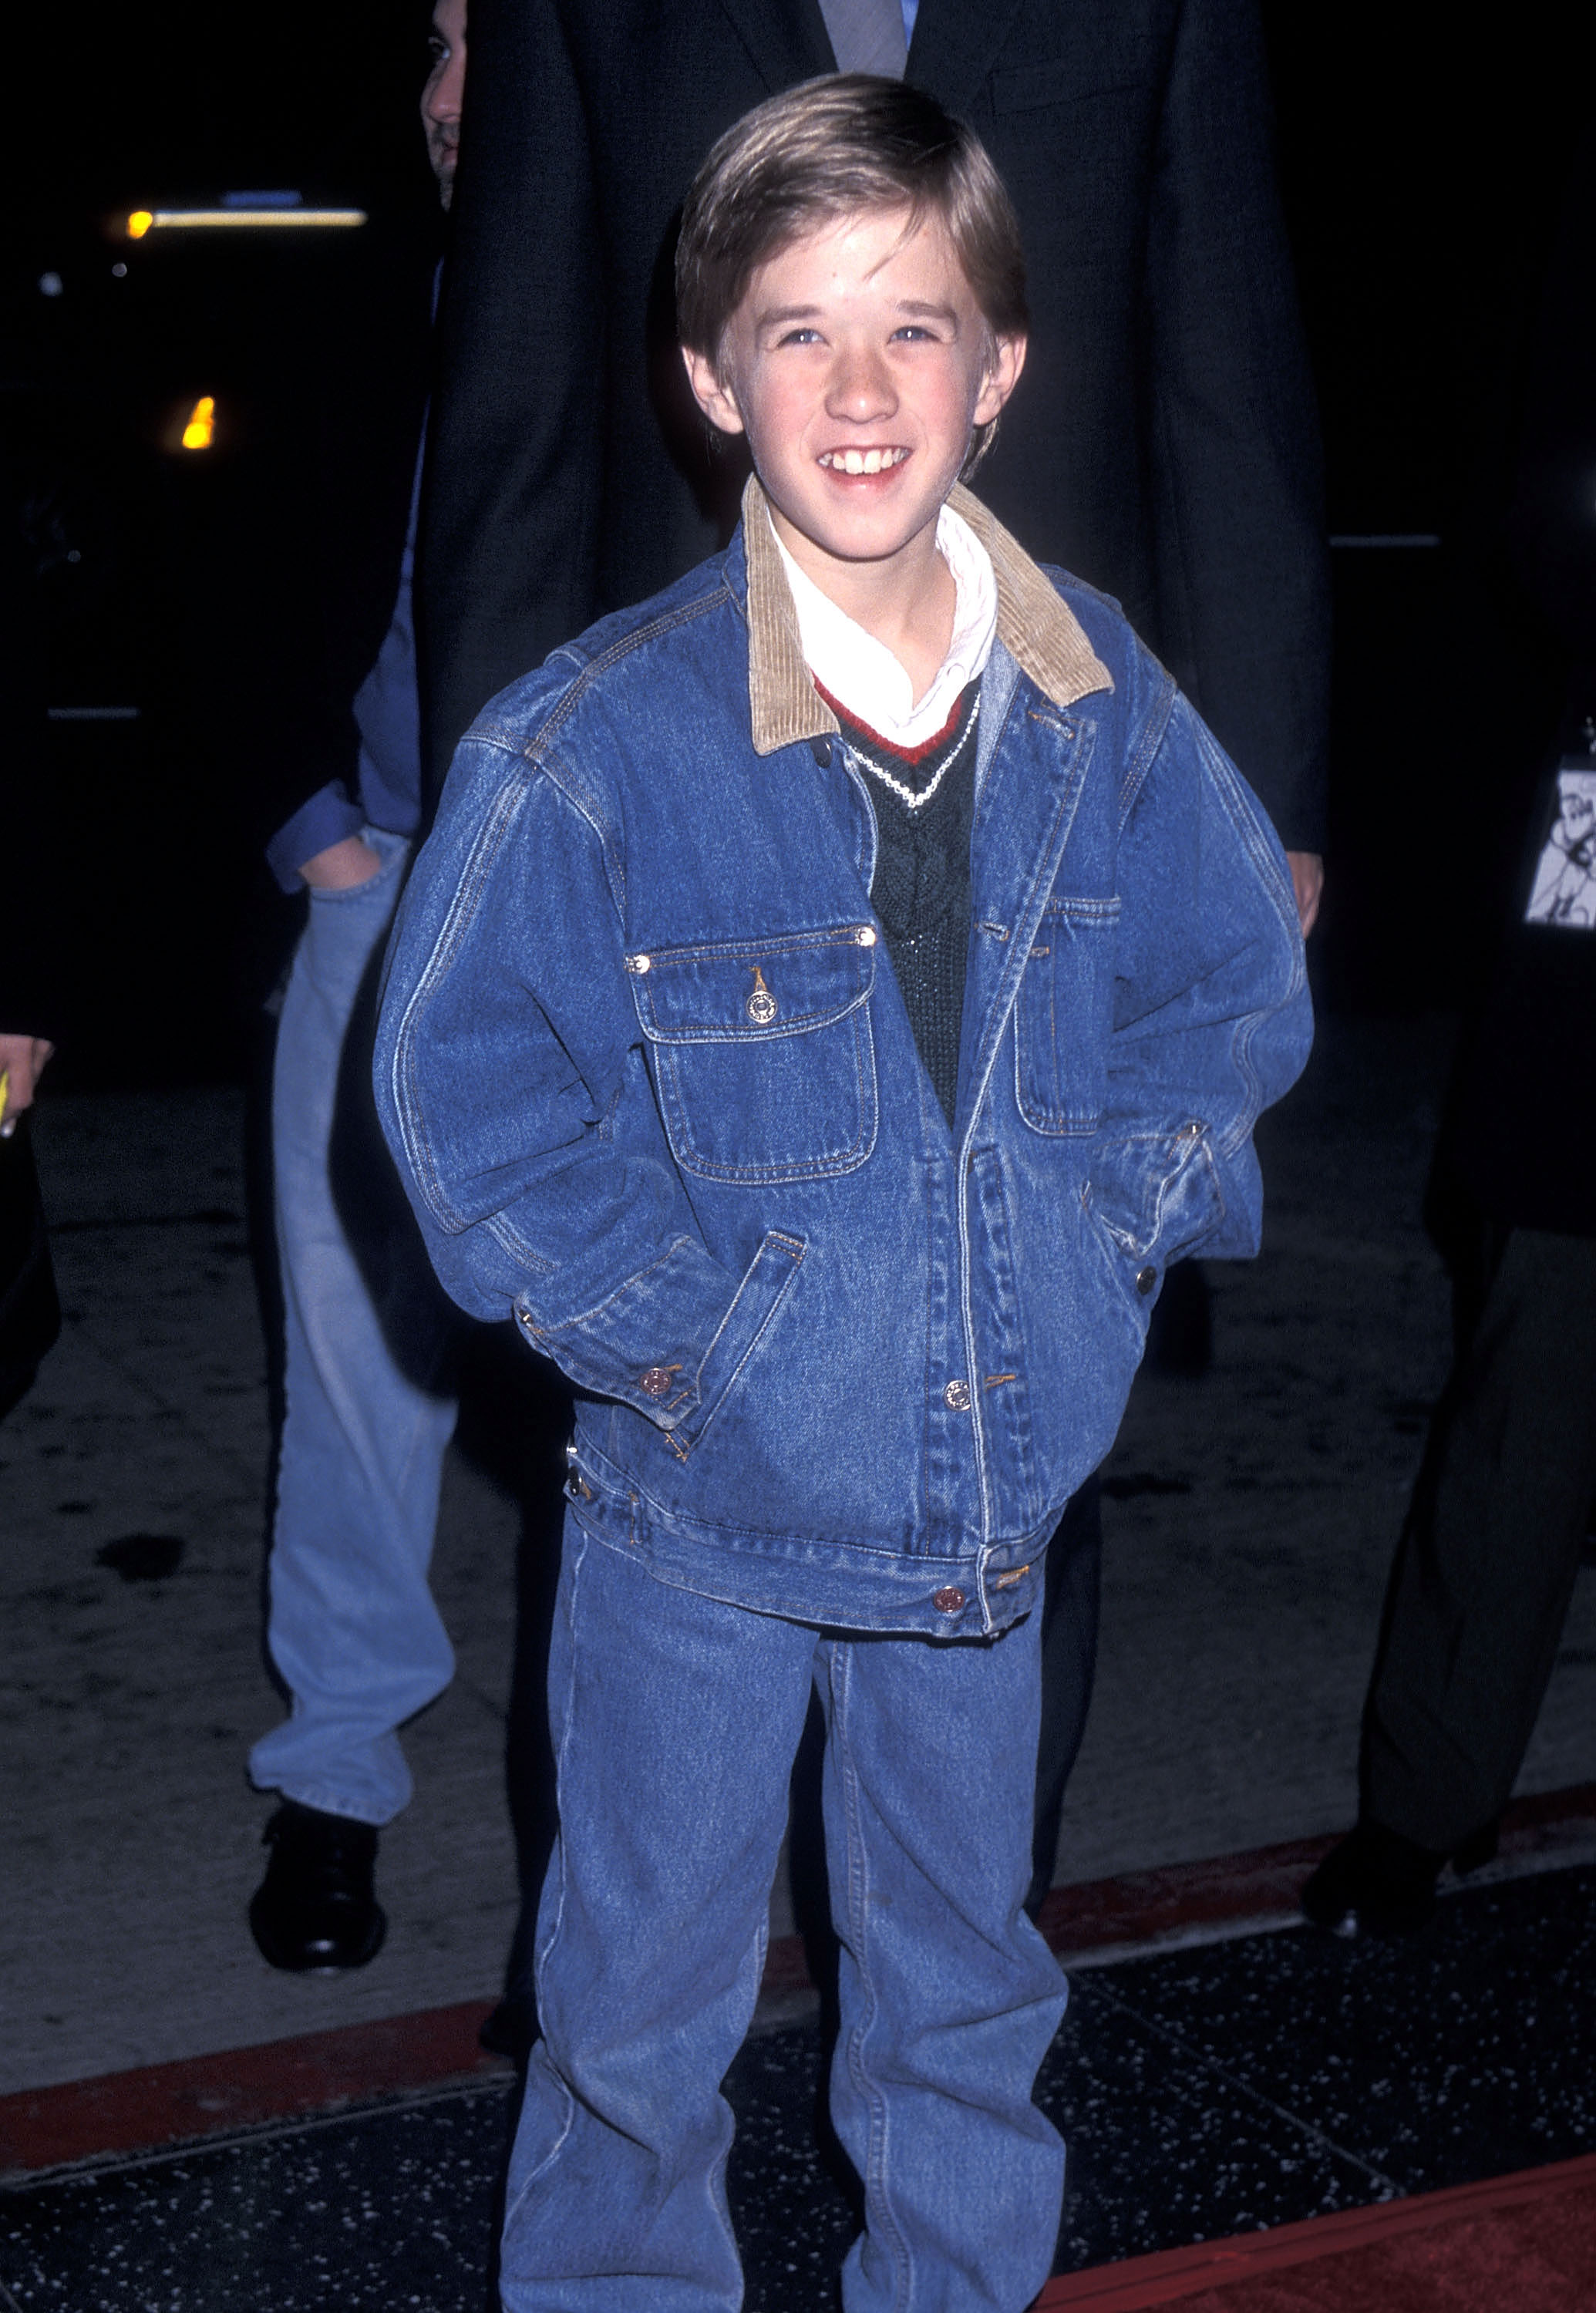 Haley Joel Osment at an event for A.I. Artificial Intelligence (2001)